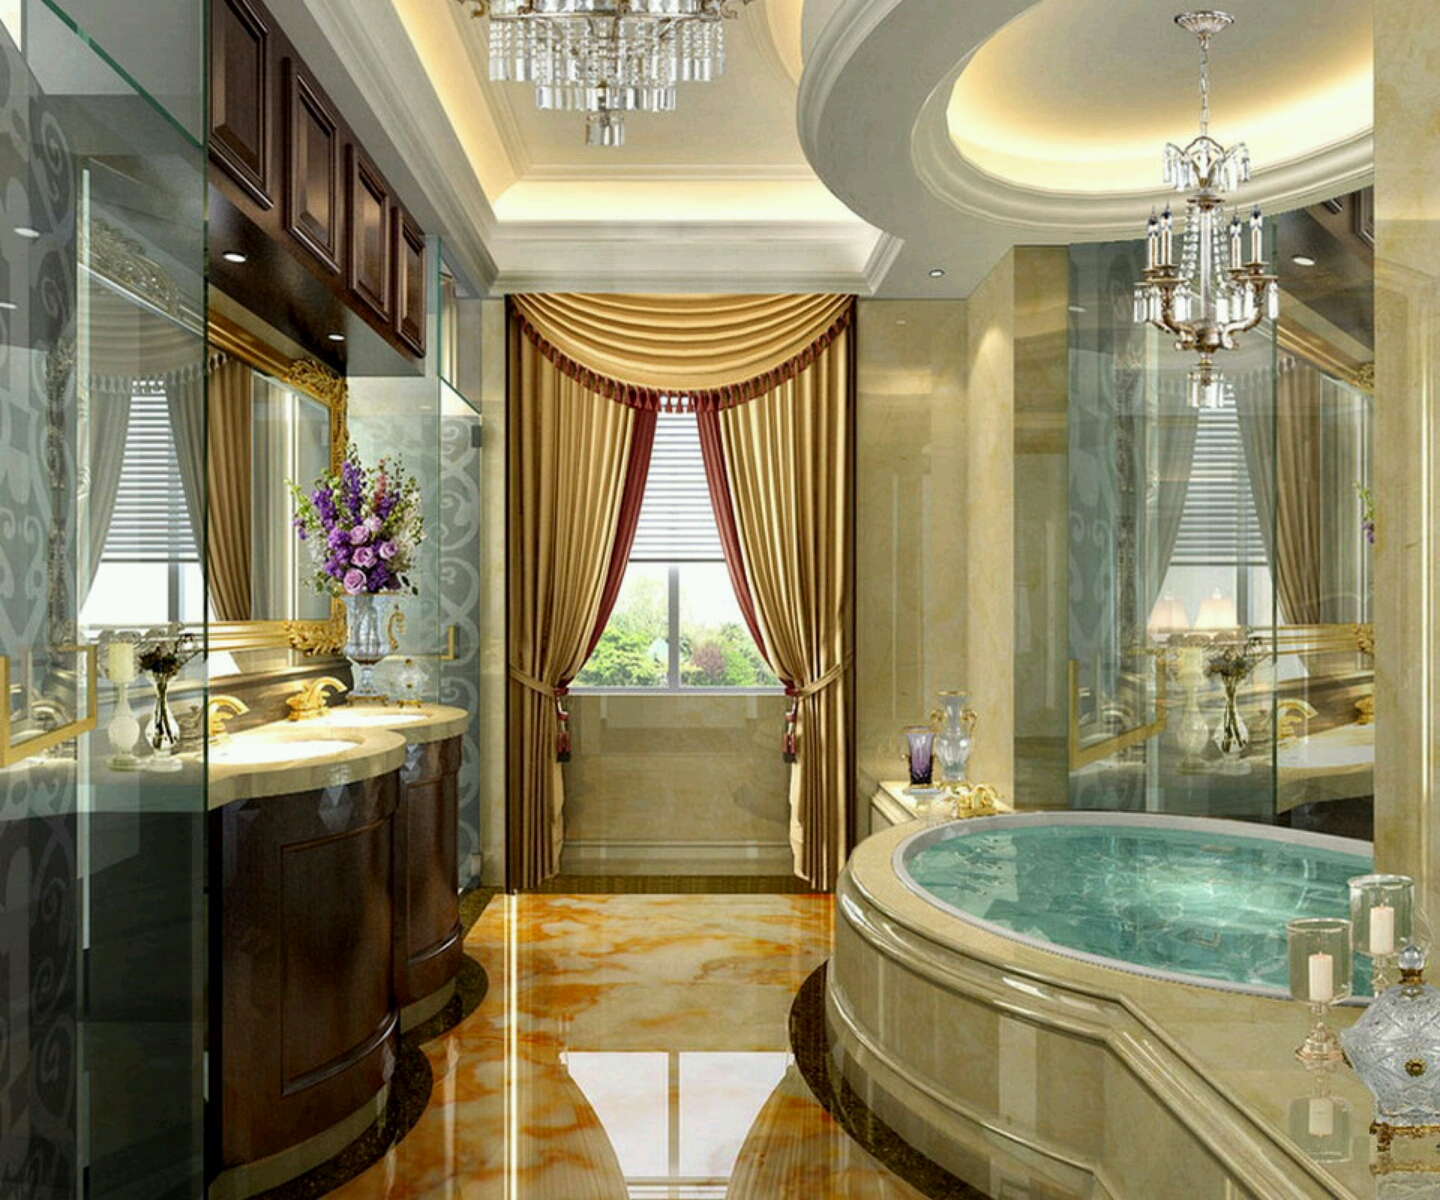 Home Design Ideas Bathroom: Luxury Modern Bathrooms Designs Decoration Ideas.